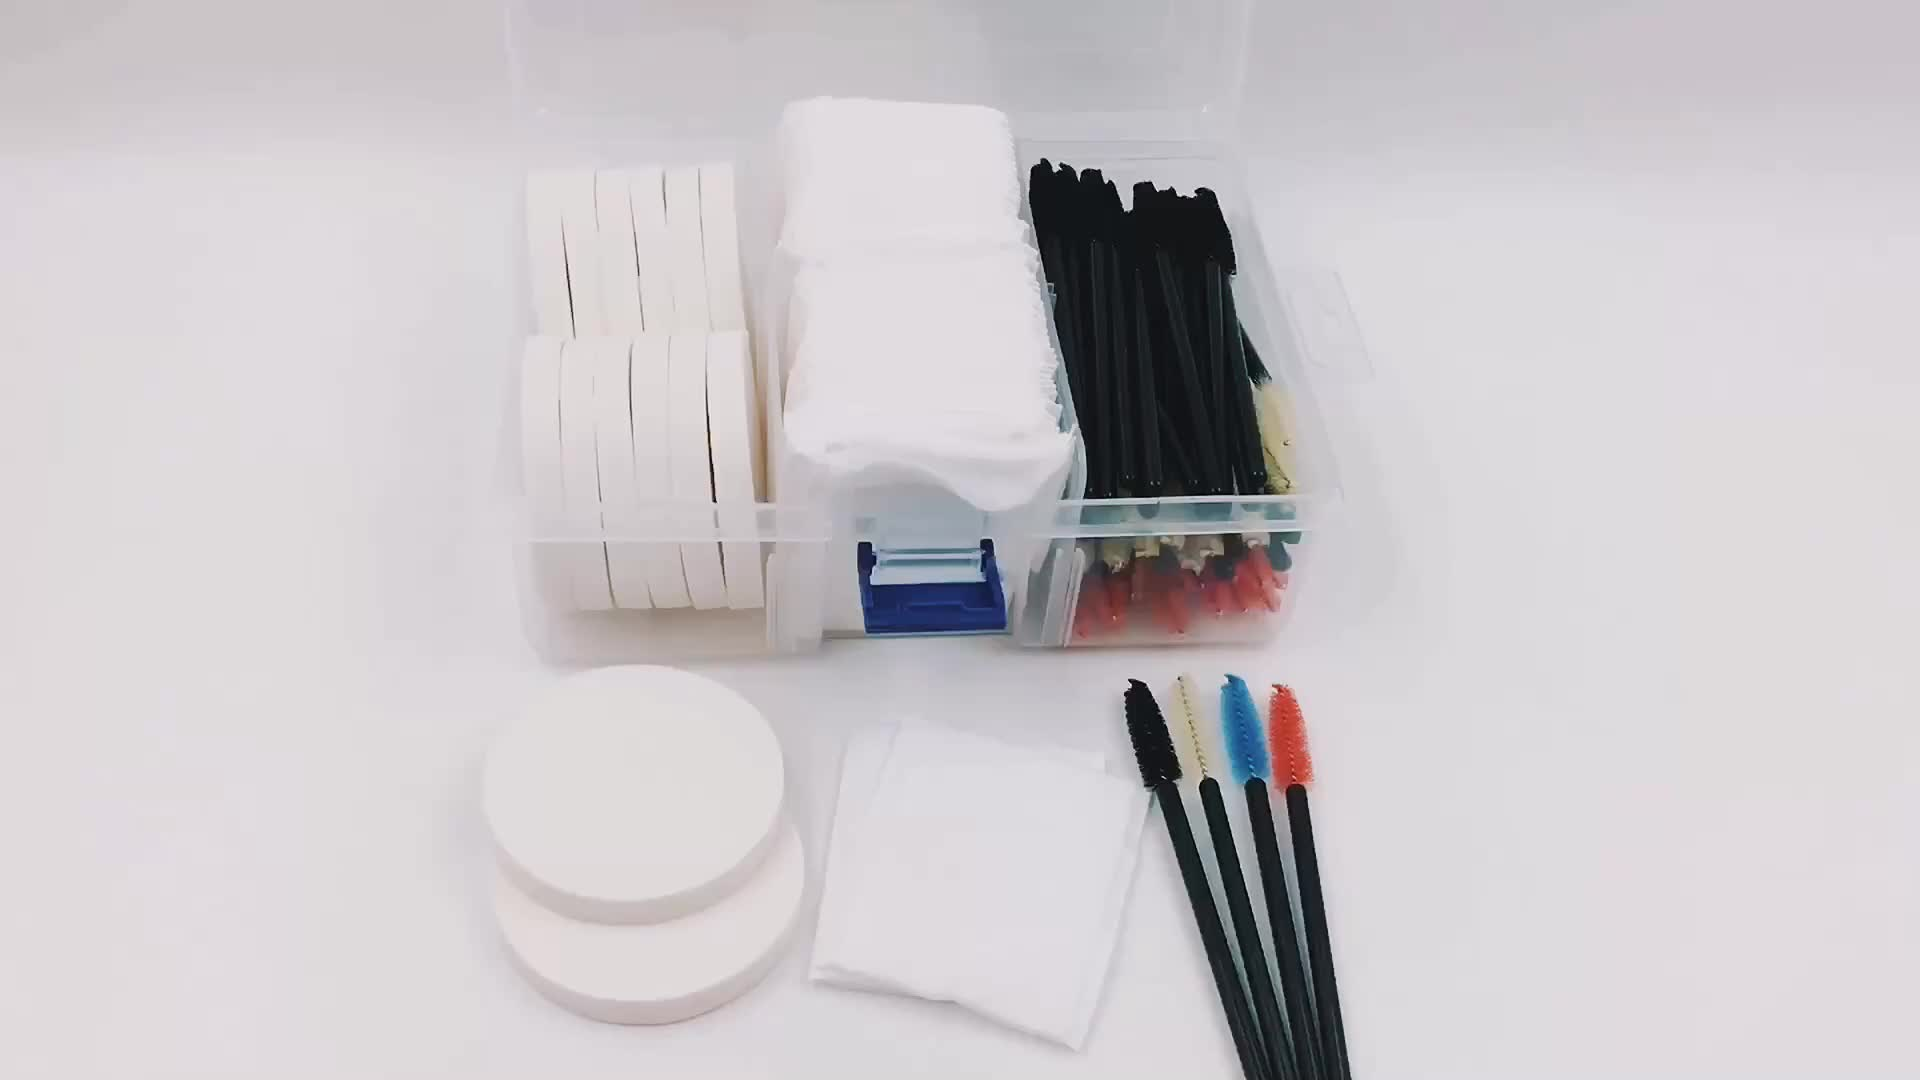 132pcs COSMETIC SPONGES COTTON PADS MASCARA WANDS Filled Cosmetic Organizer